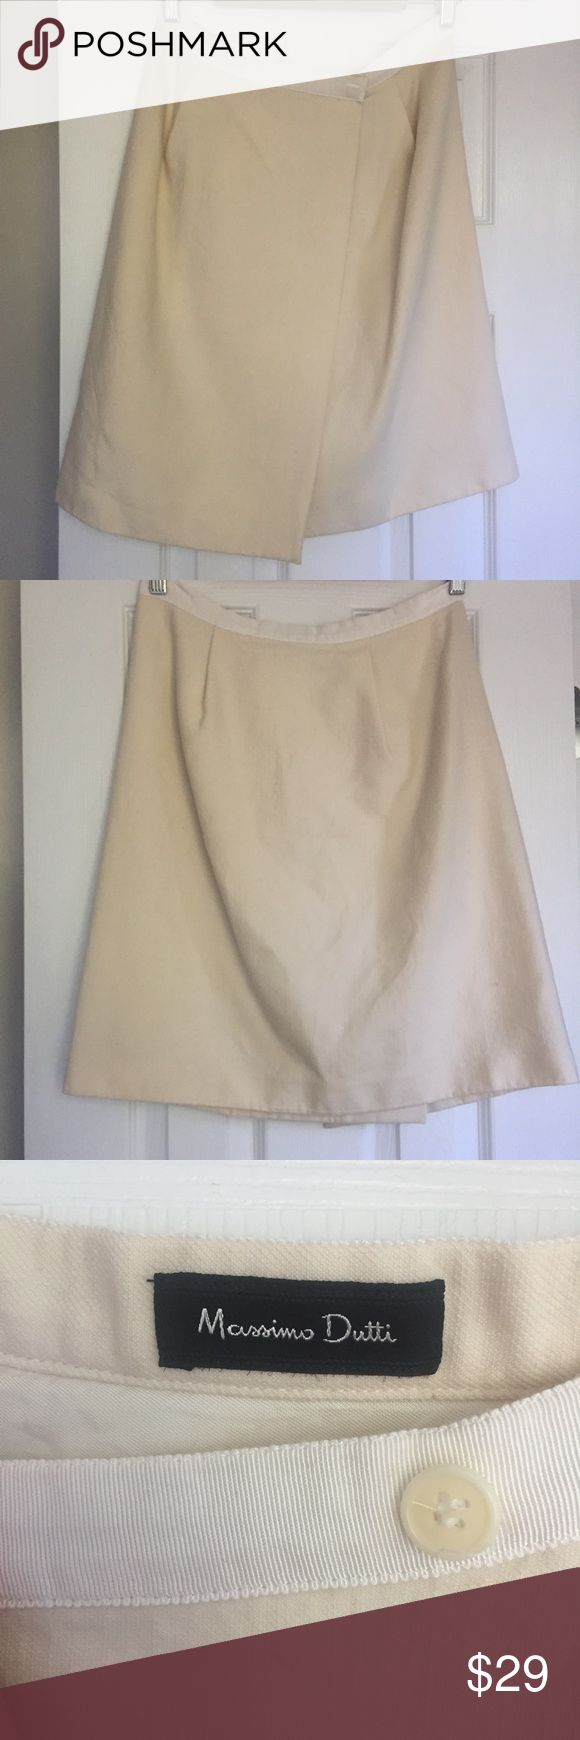 Massimo Dutti Wrap Skirt Beautiful gently worn Massimo Dutti light weight wool wrap skirt. Size 42/ US 6. A small stain on the inside which does not show on the outside of the skirt and a small barely noticeable hole in the back (see photos). Massimo Dutti Skirts Mini